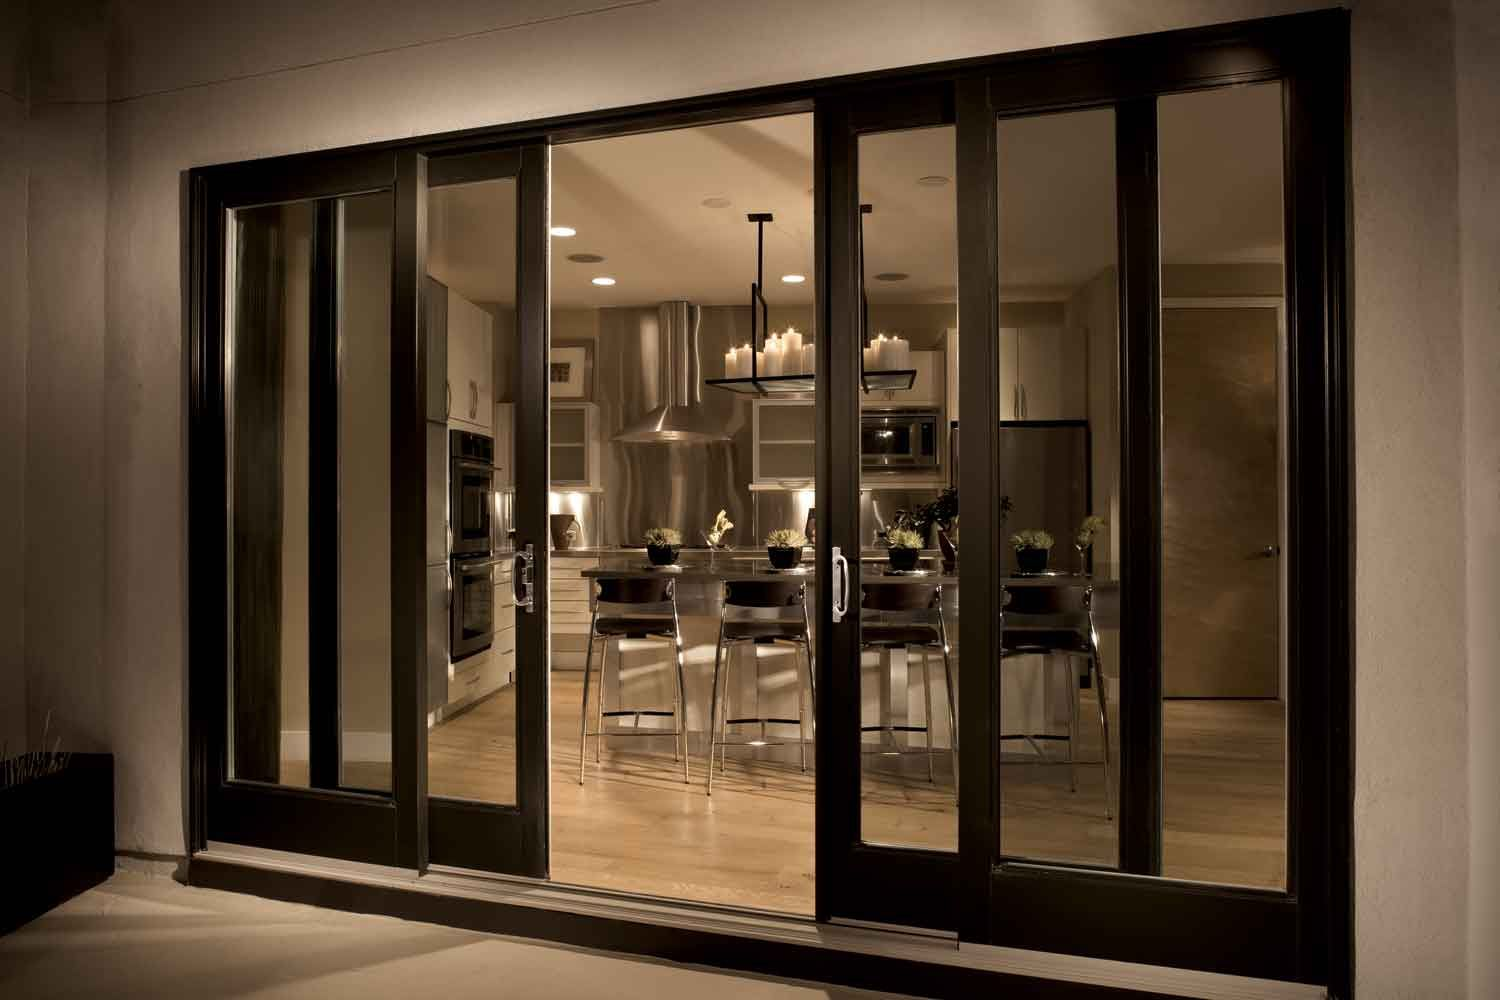 Patio French Patio Door With Screen With 2 Panel Doors And Wooden Glass Doors Patio Sliding Doors Exterior Sliding Patio Doors